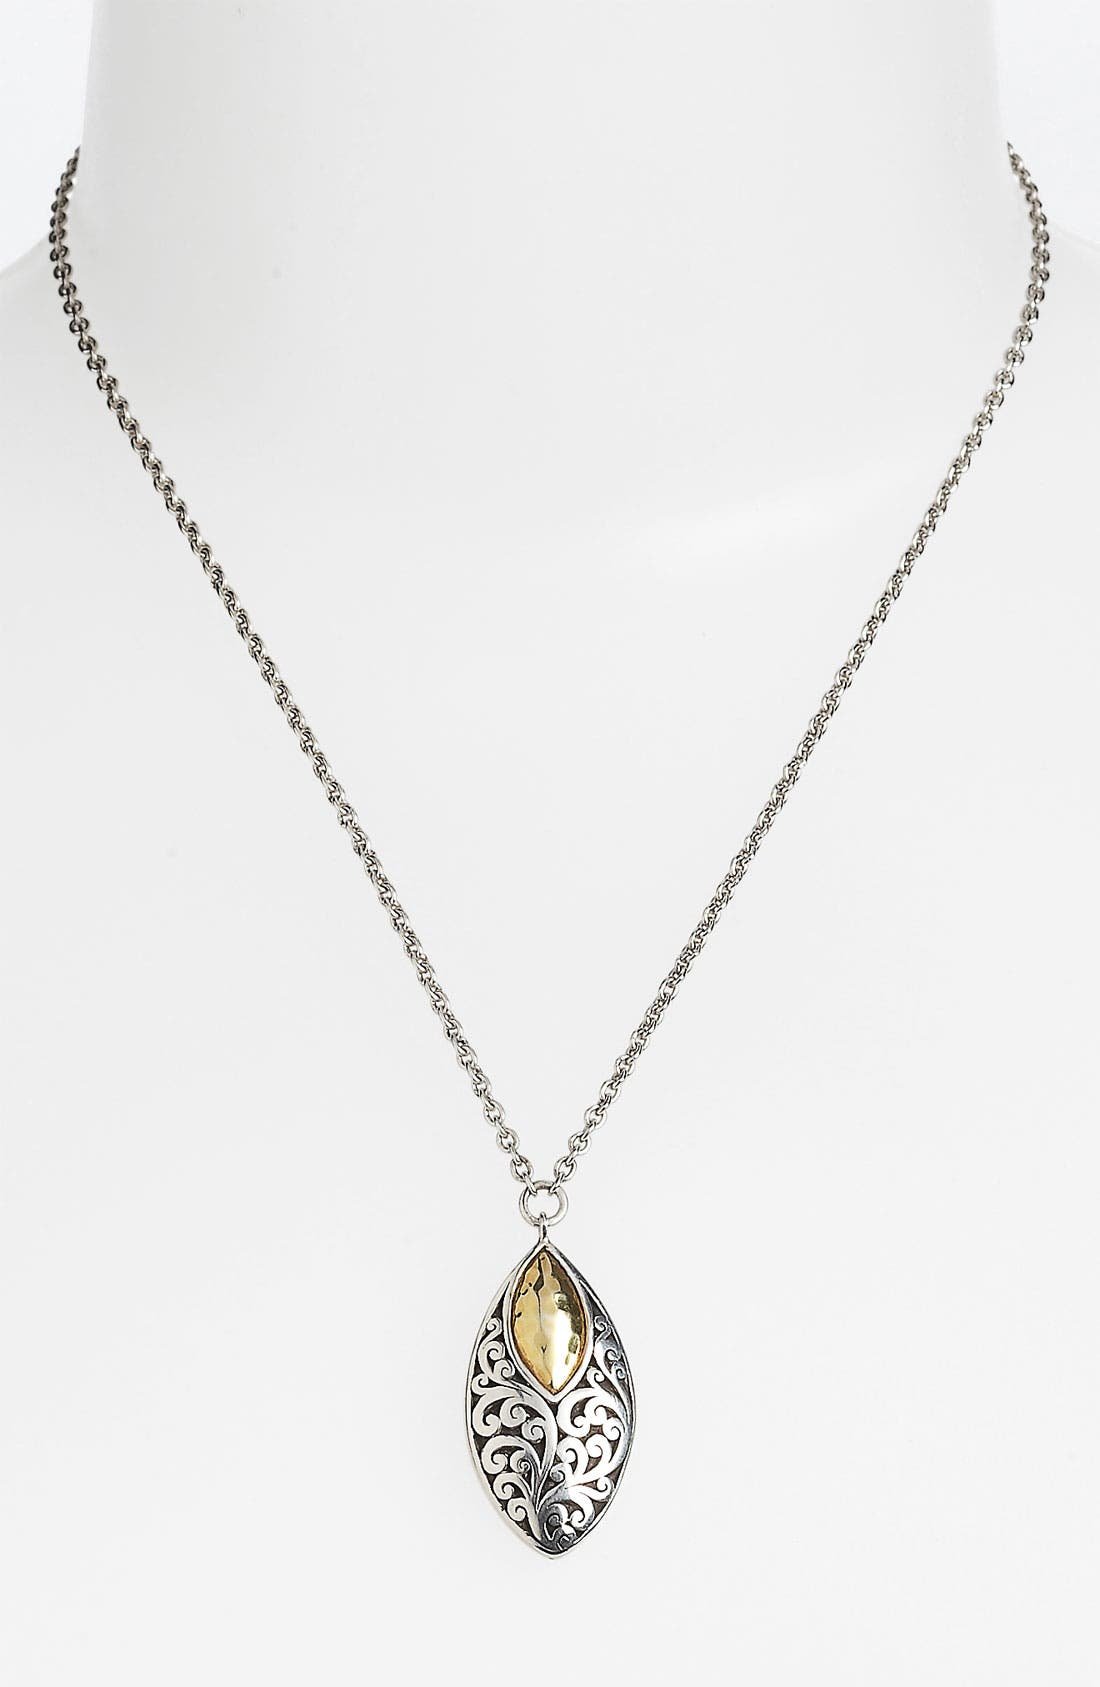 Main Image - Lois Hill 'Marquise' Pendant Necklace